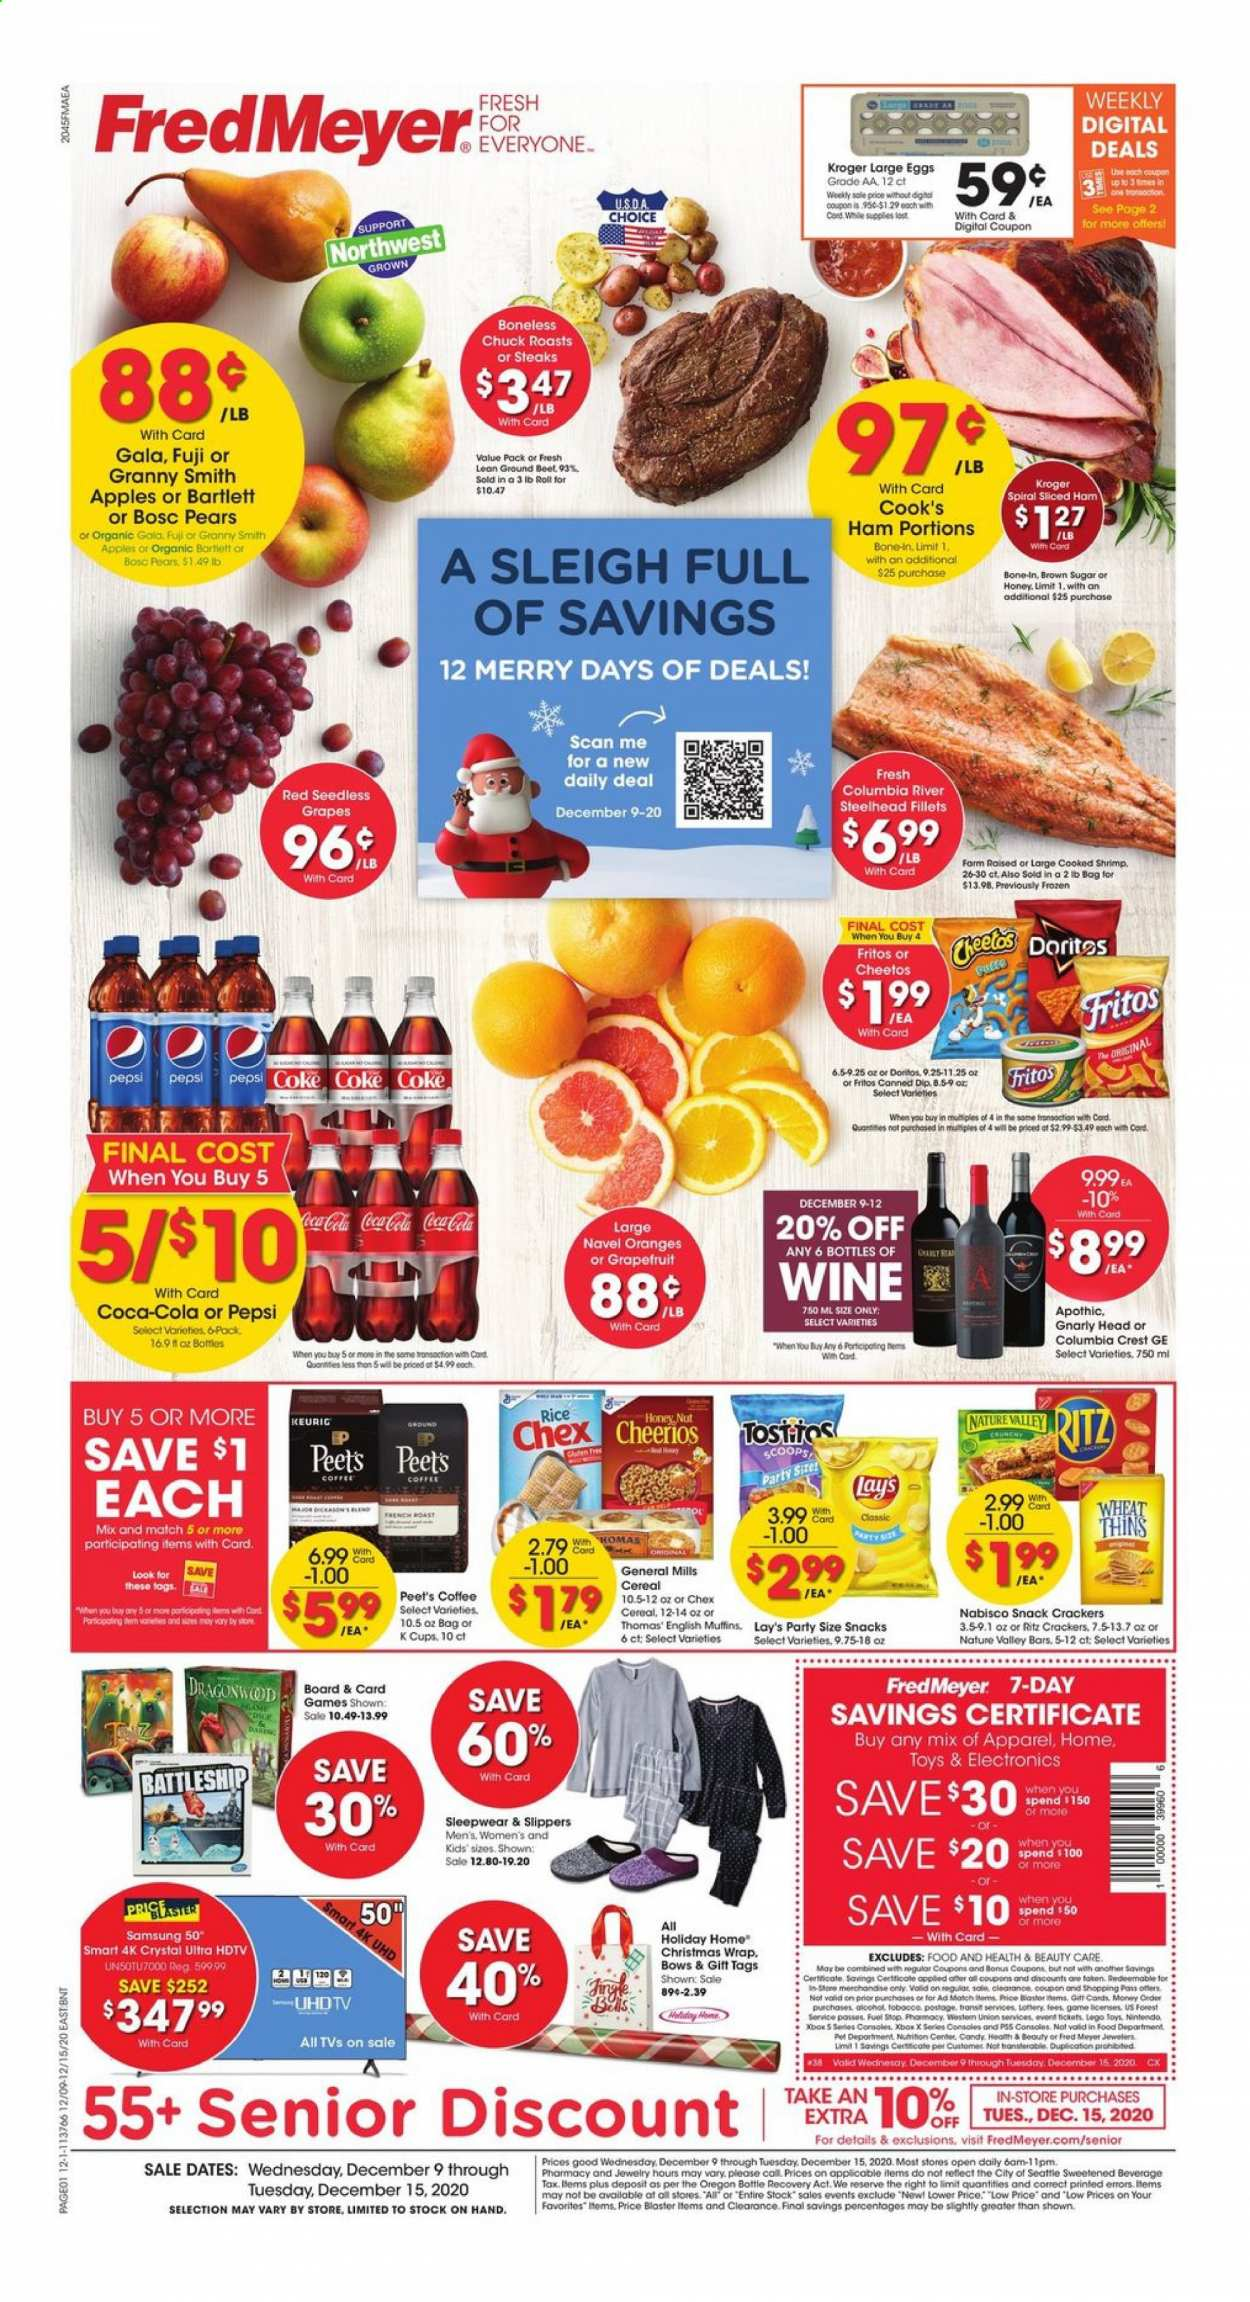 Fred Meyer Flyer - 12.09.2020 - 12.15.2020 - Sales products - apples, Beet, brown sugar, cereals, coca-cola, coffee, Doritos, eggs, english muffins, columbia, Fritos, frozen, fuel, grapes, LEGO, muffins, rice, Samsung, sleepwear, slippers, sugar, ham, hdtv, honey, cheerios, cheetos, pears, Pepsi, orange, toys, candy, snack, Lay's, wine, Apple, shrimps, Xbox, christmas wrap. Page 1.